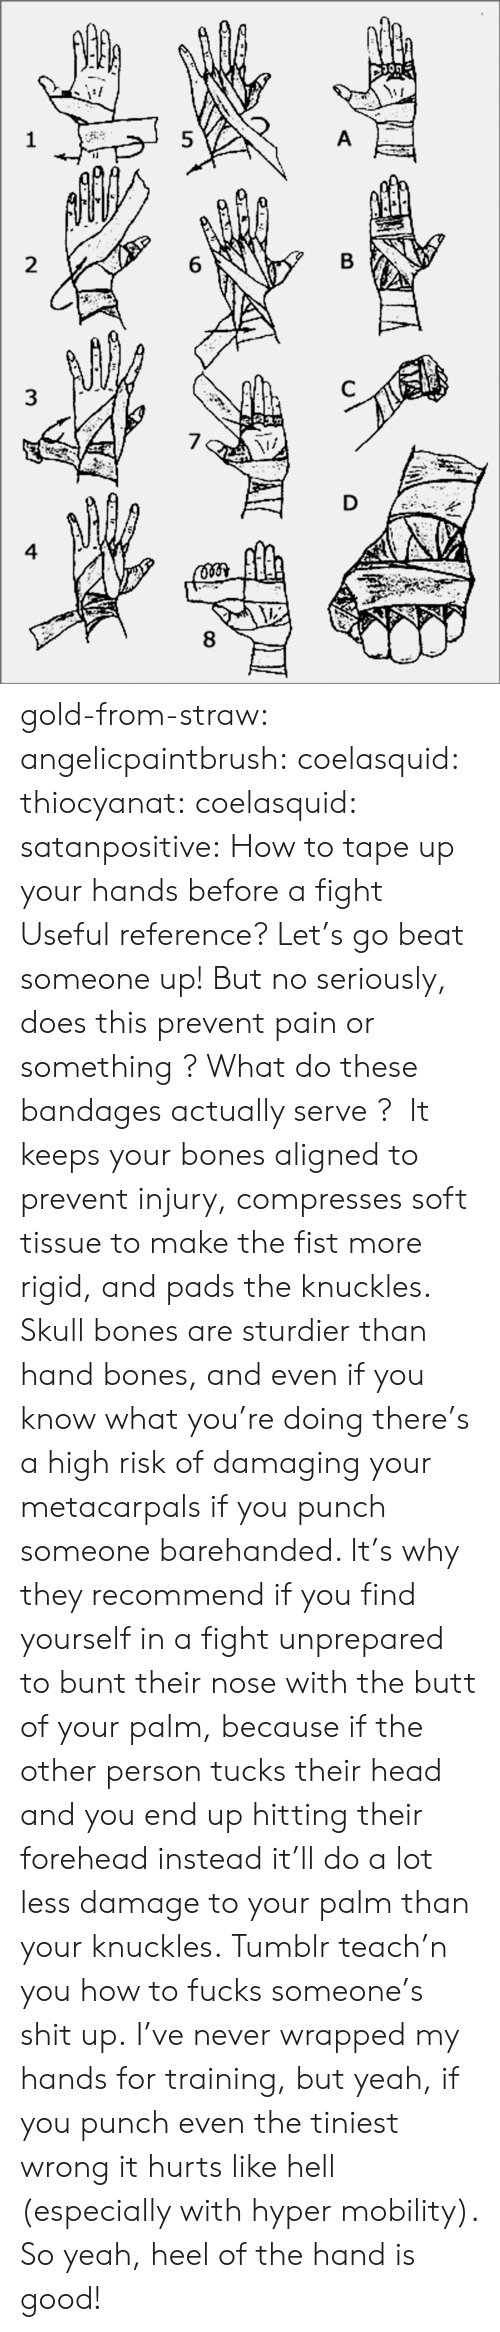 pads: 8  6  5  3  4 gold-from-straw:  angelicpaintbrush:  coelasquid:  thiocyanat:  coelasquid:  satanpositive:  How to tape up your hands before a fight  Useful reference?  Let's go beat someone up! But no seriously, does this prevent pain or something? What do these bandages actually serve?  It keeps your bones aligned to prevent injury, compresses soft tissue to make the fist more rigid, and pads the knuckles. Skull bones are sturdier than hand bones, and even if you know what you're doing there's a high risk of damaging your metacarpals if you punch someone barehanded. It's why they recommend if you find yourself in a fight unprepared to bunt their nose with the butt of your palm, because if the other person tucks their head and you end up hitting their forehead instead it'll do a lot less damage to your palm than your knuckles.  Tumblr teach'n you how to fucks someone's shit up.   I've never wrapped my hands for training, but yeah, if you punch even the tiniest wrong it hurts like hell (especially with hyper mobility). So yeah, heel of the hand is good!